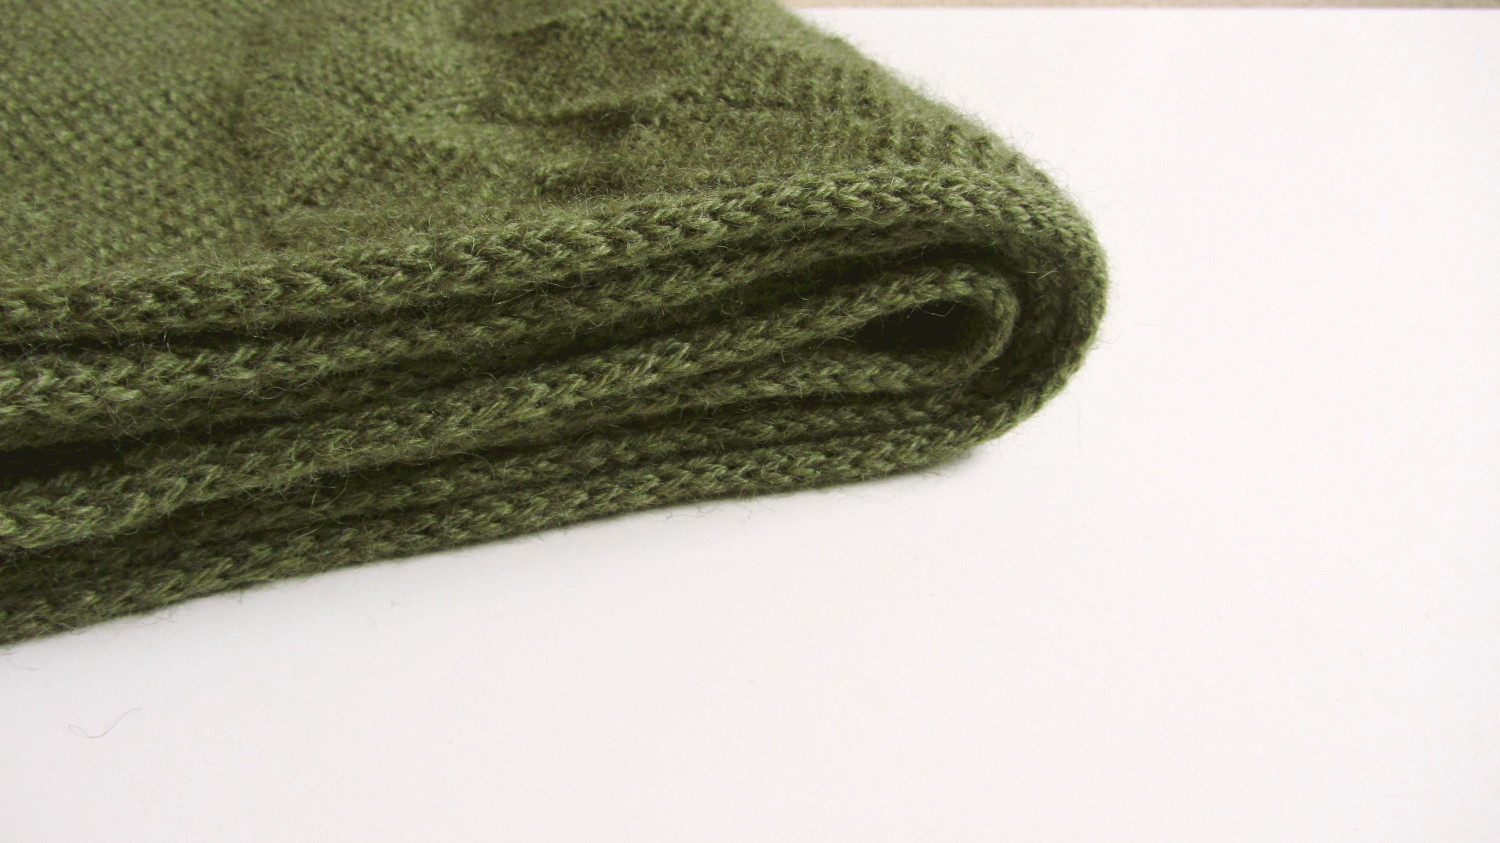 The scarf features tubular selvedges for a minimal, yet elegant edging.